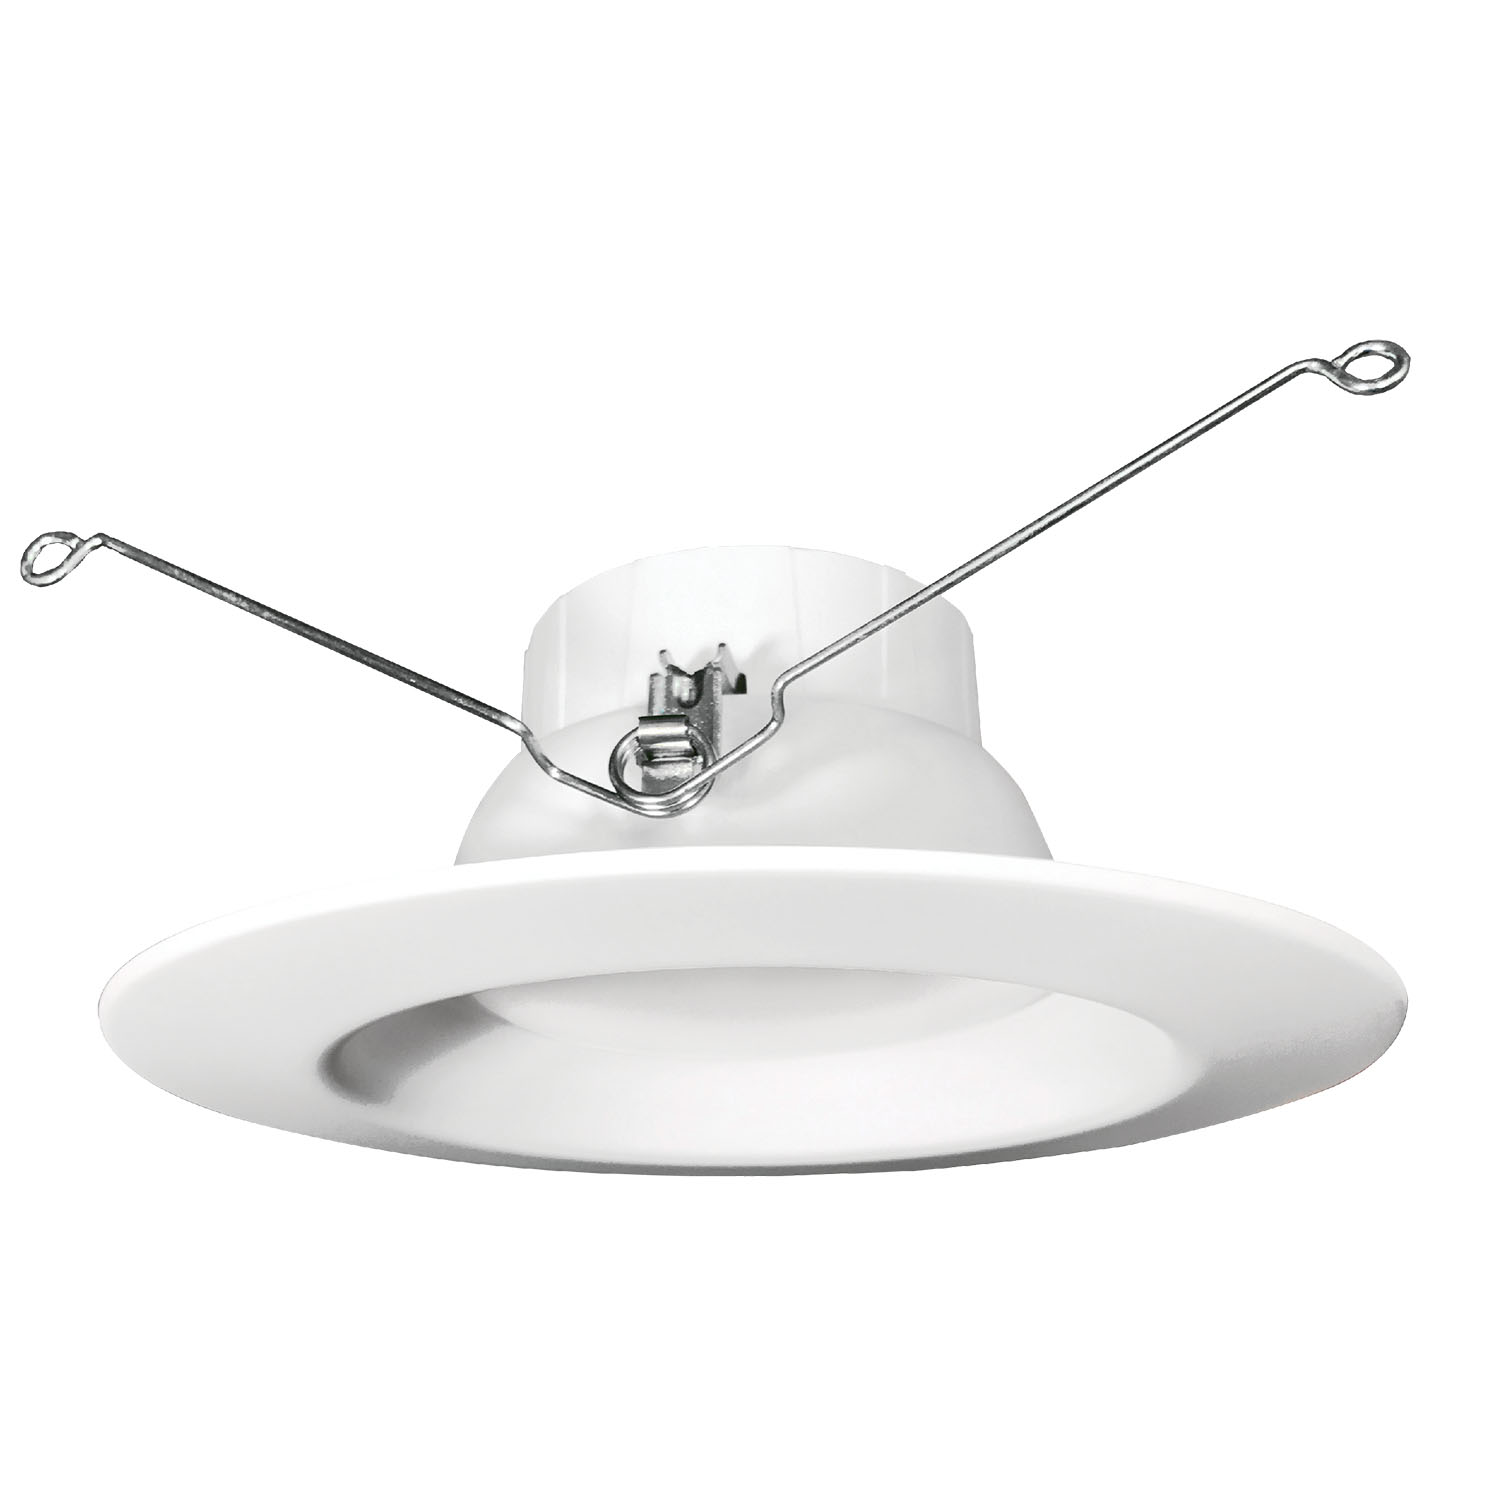 "DL6FR12/927/ECO/LED2 99641 6"" Retrofit Downlight, 12W, 2700K, Dimmable ProLED ECO Series II"